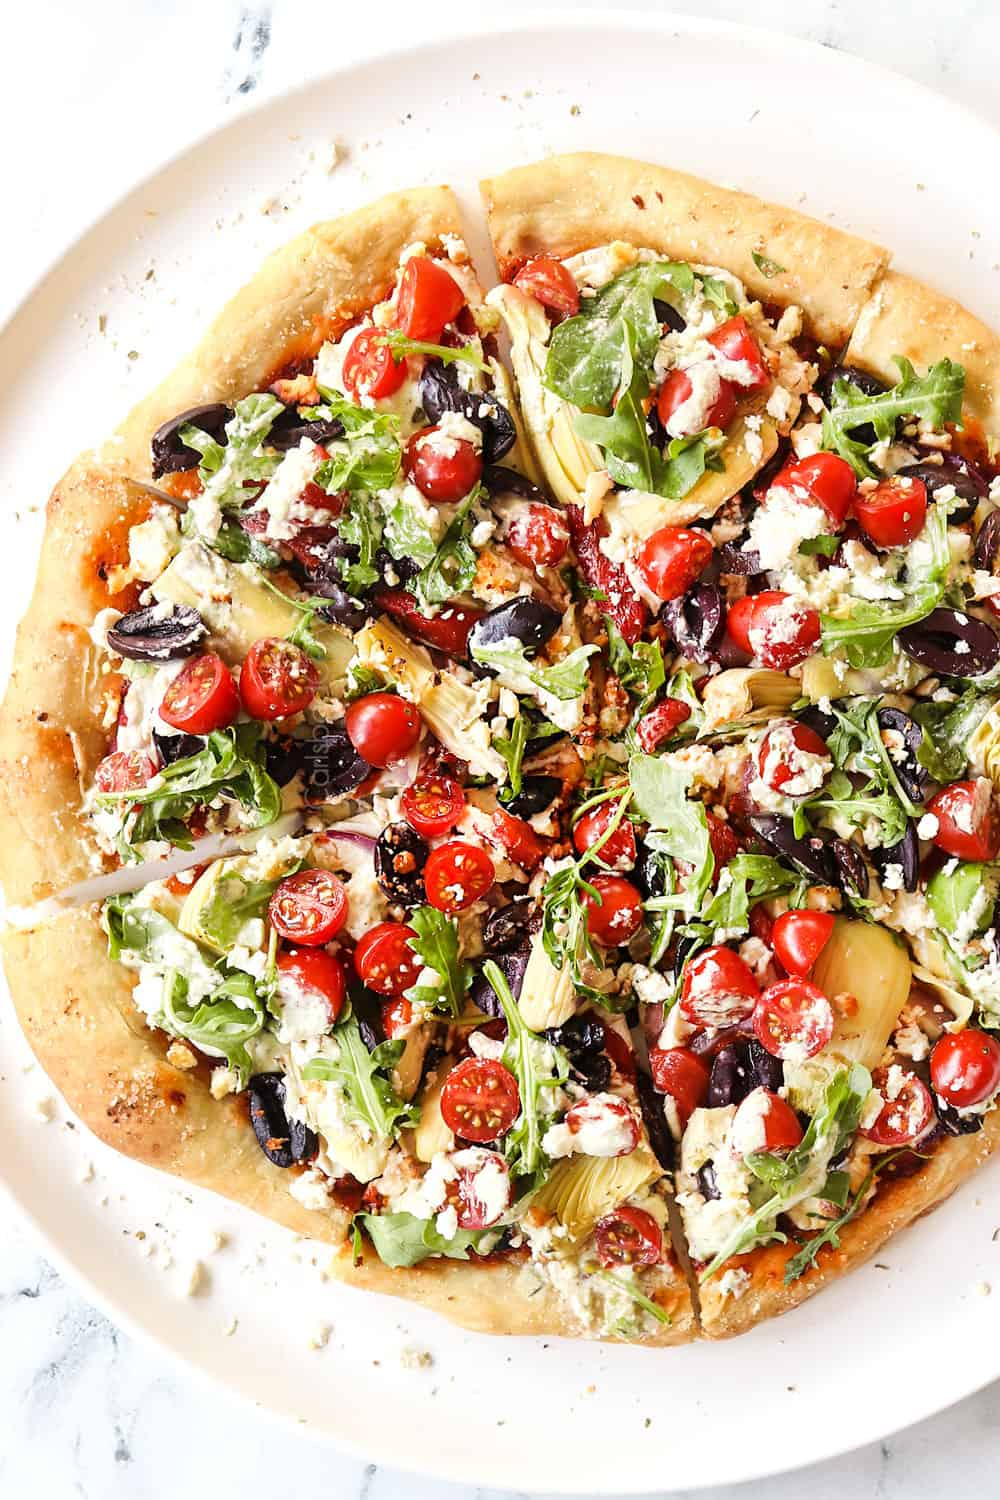 showing how to make Greek pizza recipe by adding arugula, tomatoes, cucumbers and tzatziki to the top of the baked pizza